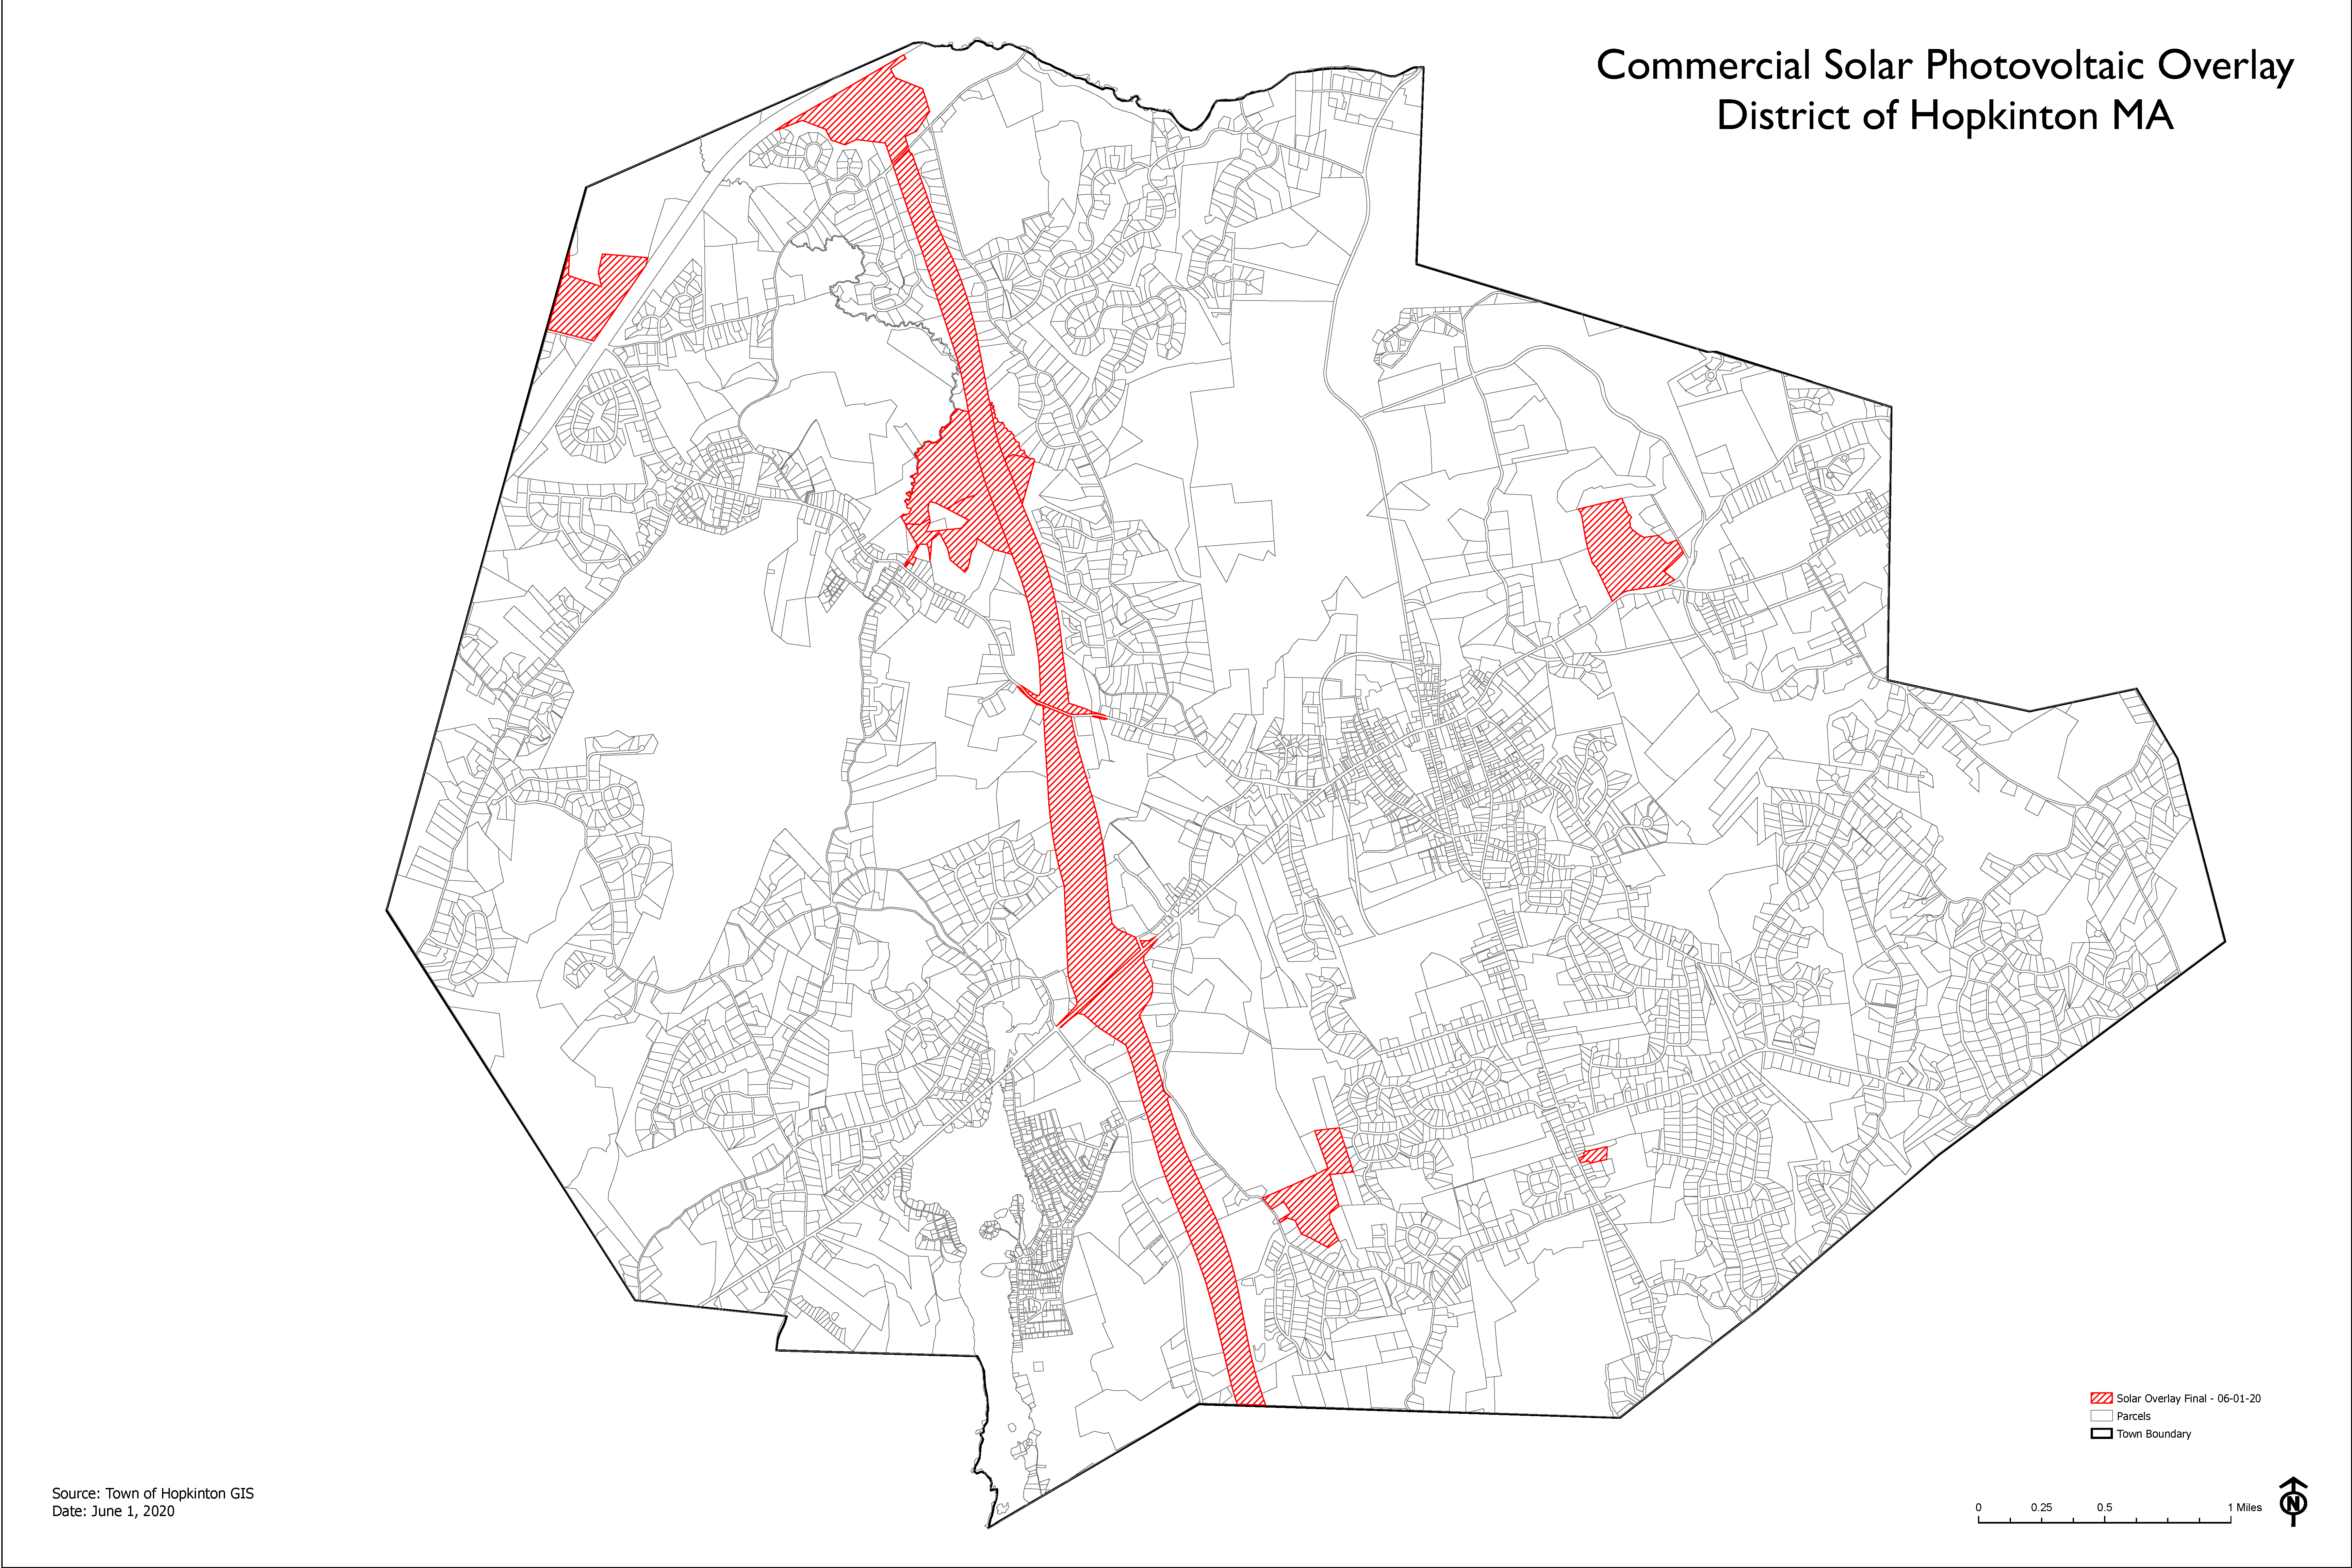 Stakeholder Concerns and Challenges surrounding Solar By-Laws in Hopkinton